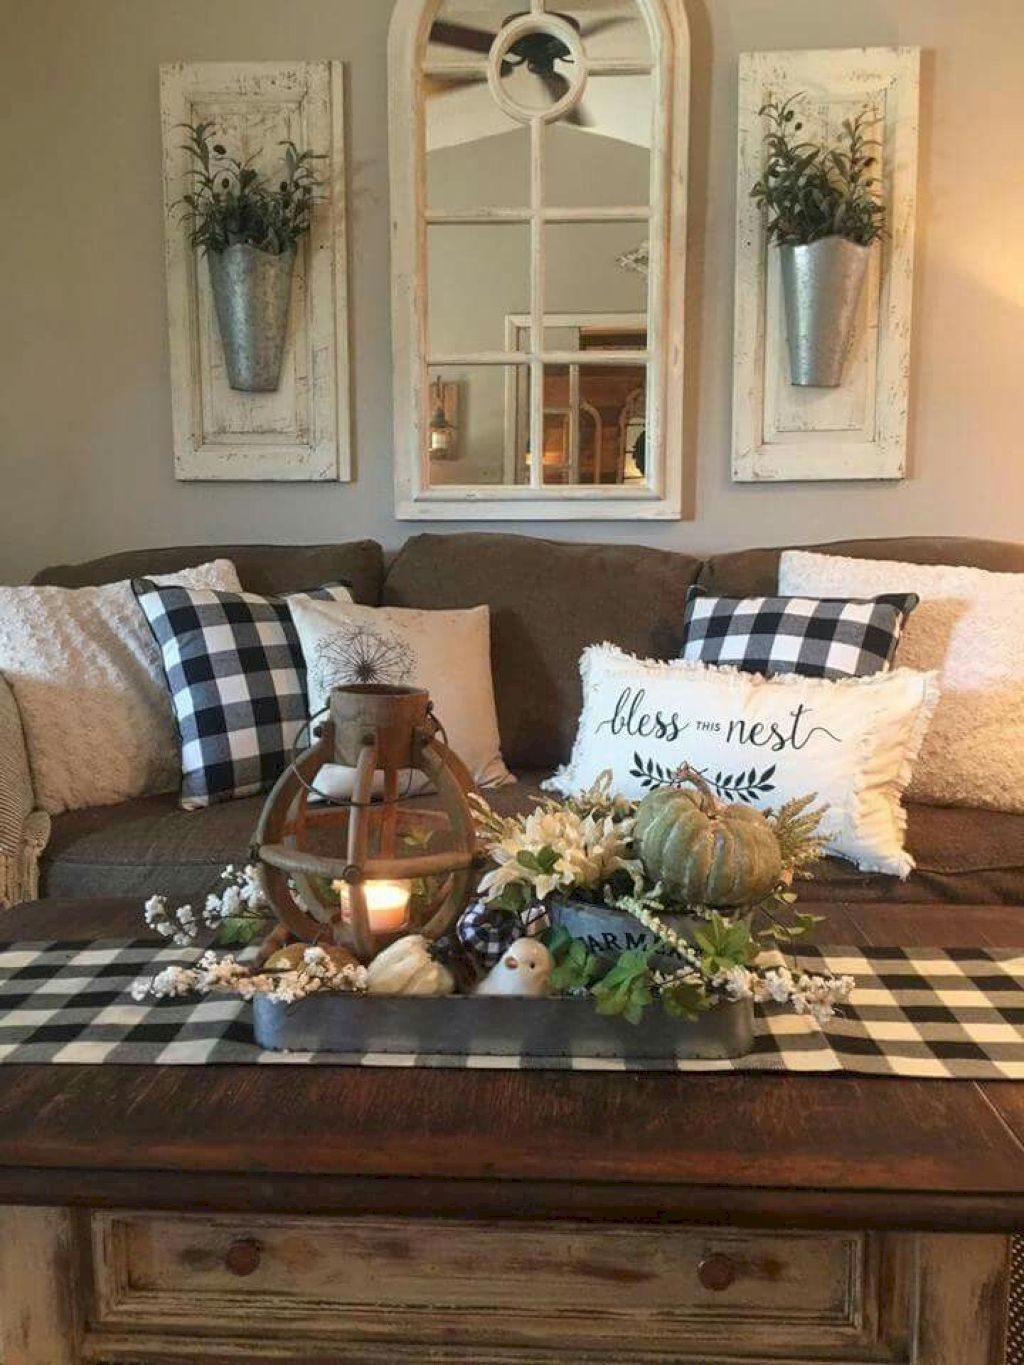 46 Fascinating Farmhouse Design Ideas For Living Room images